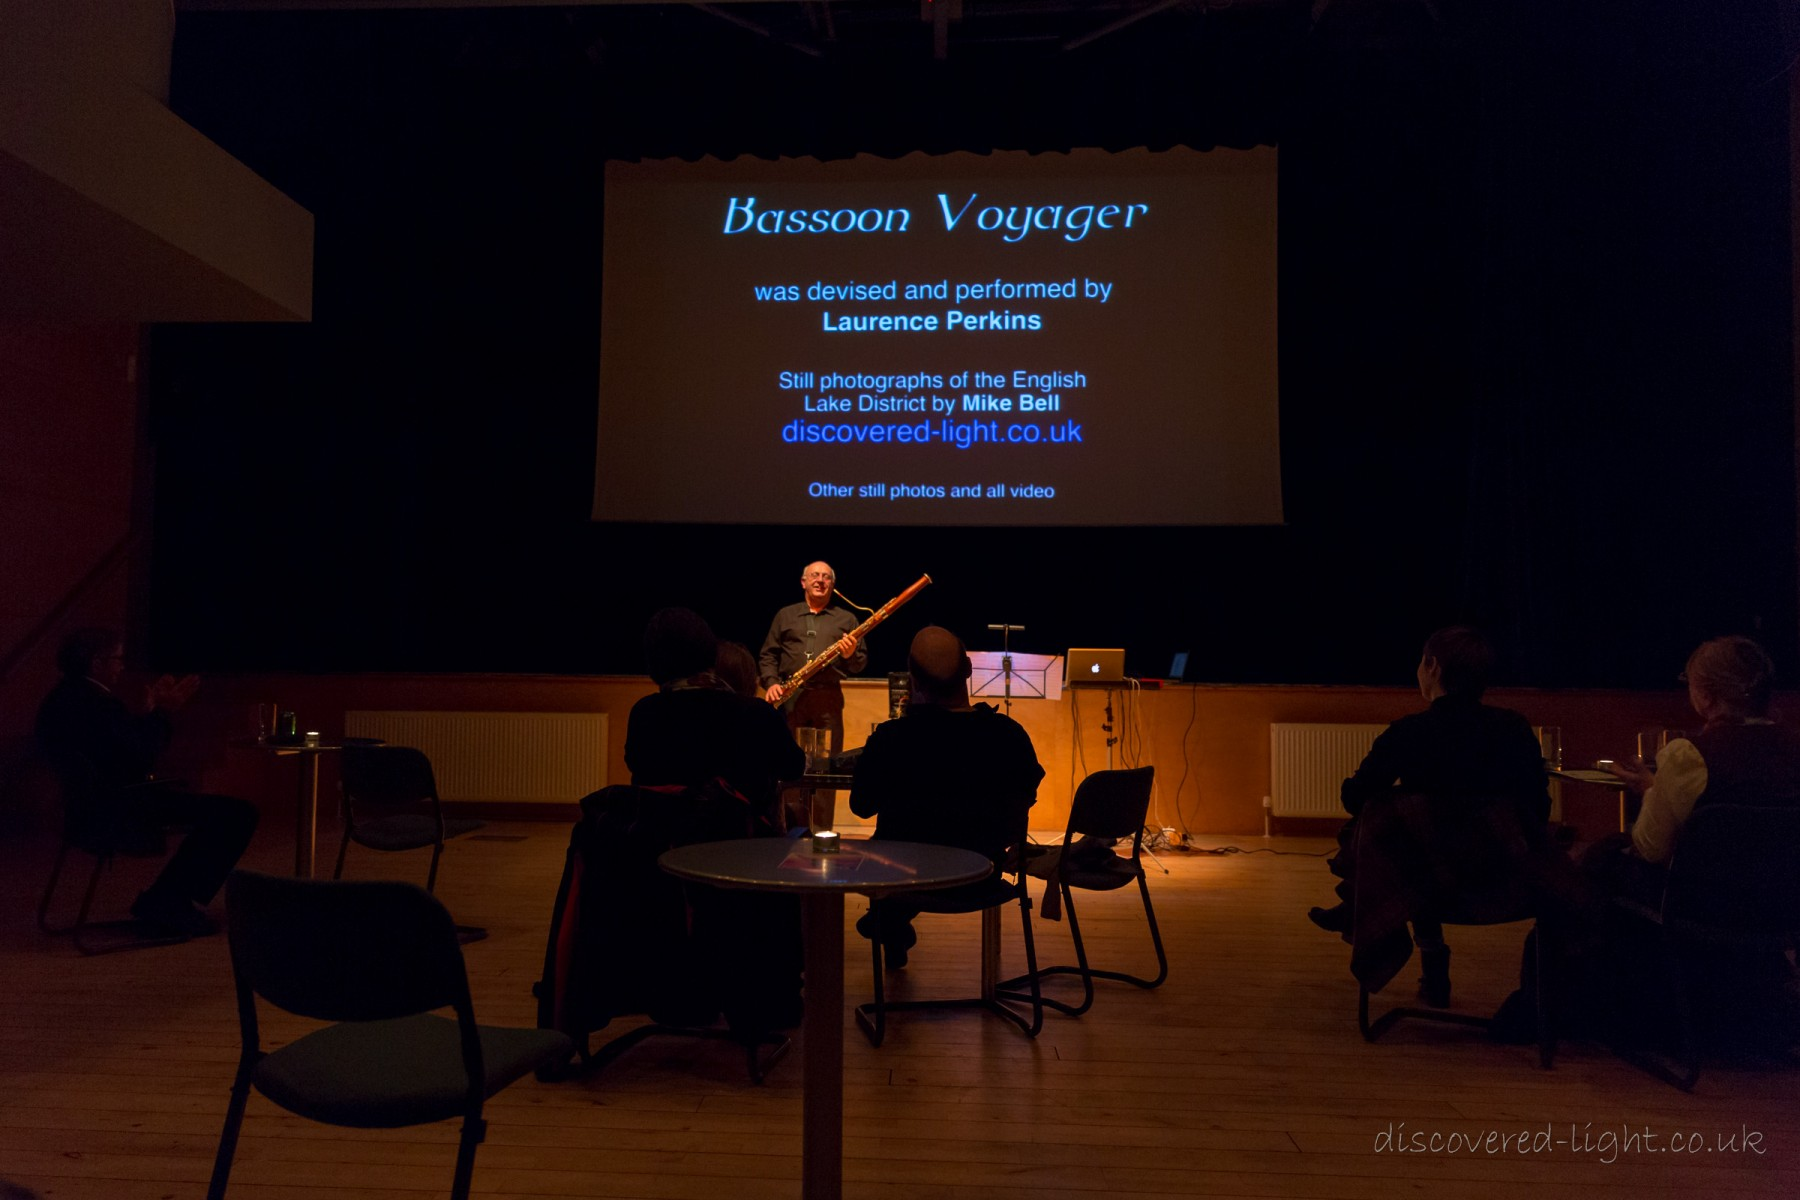 A performance of Bassoon Voyager at the Birnam Institute in Perthshire, Scotland. (Photo by Mike Bell)